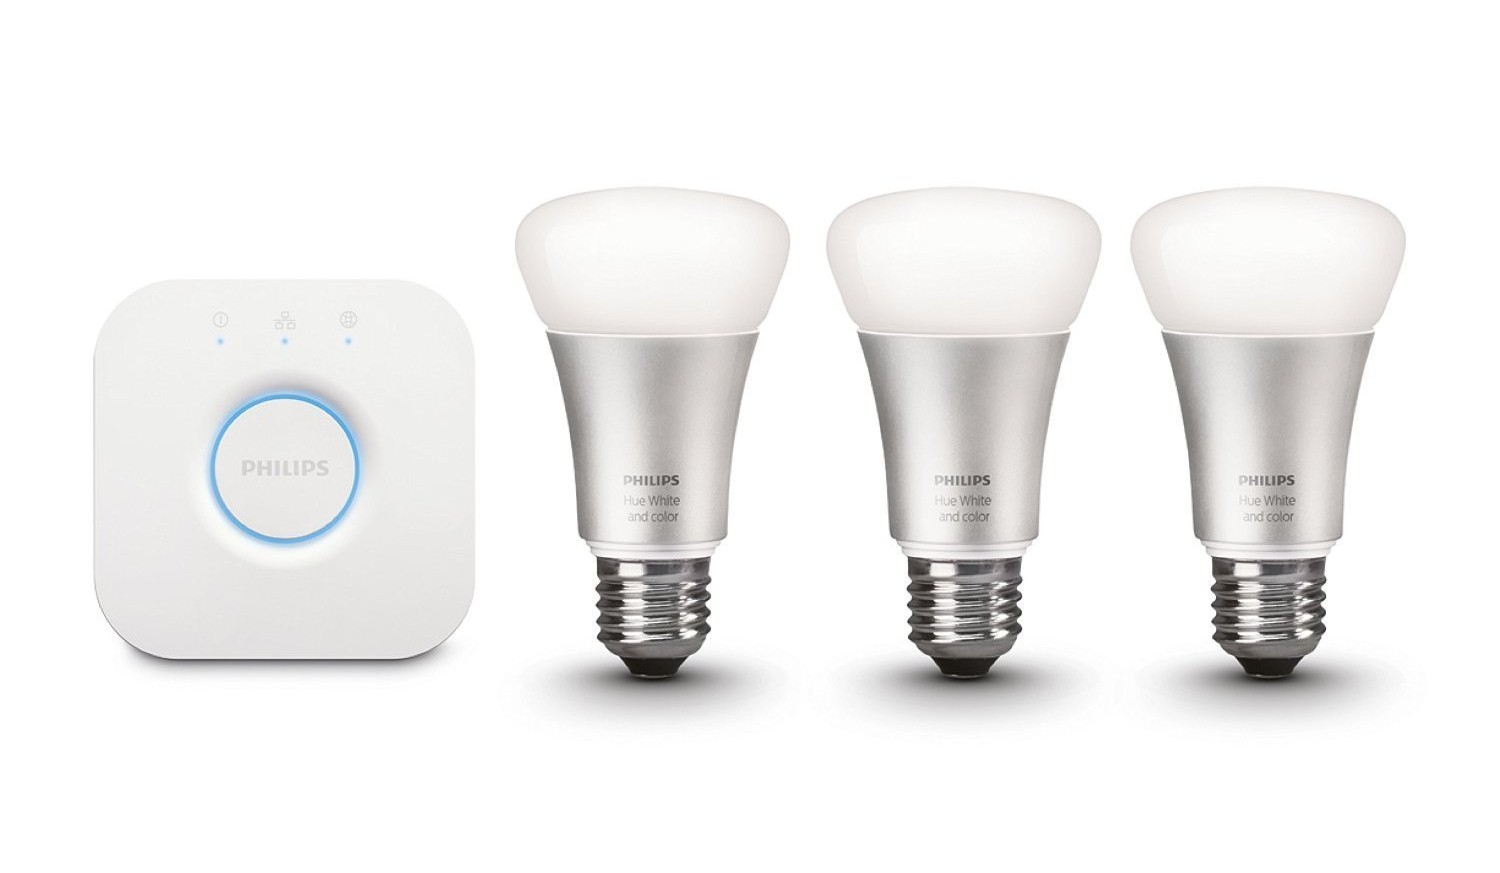 Philips Hue Starter Kit